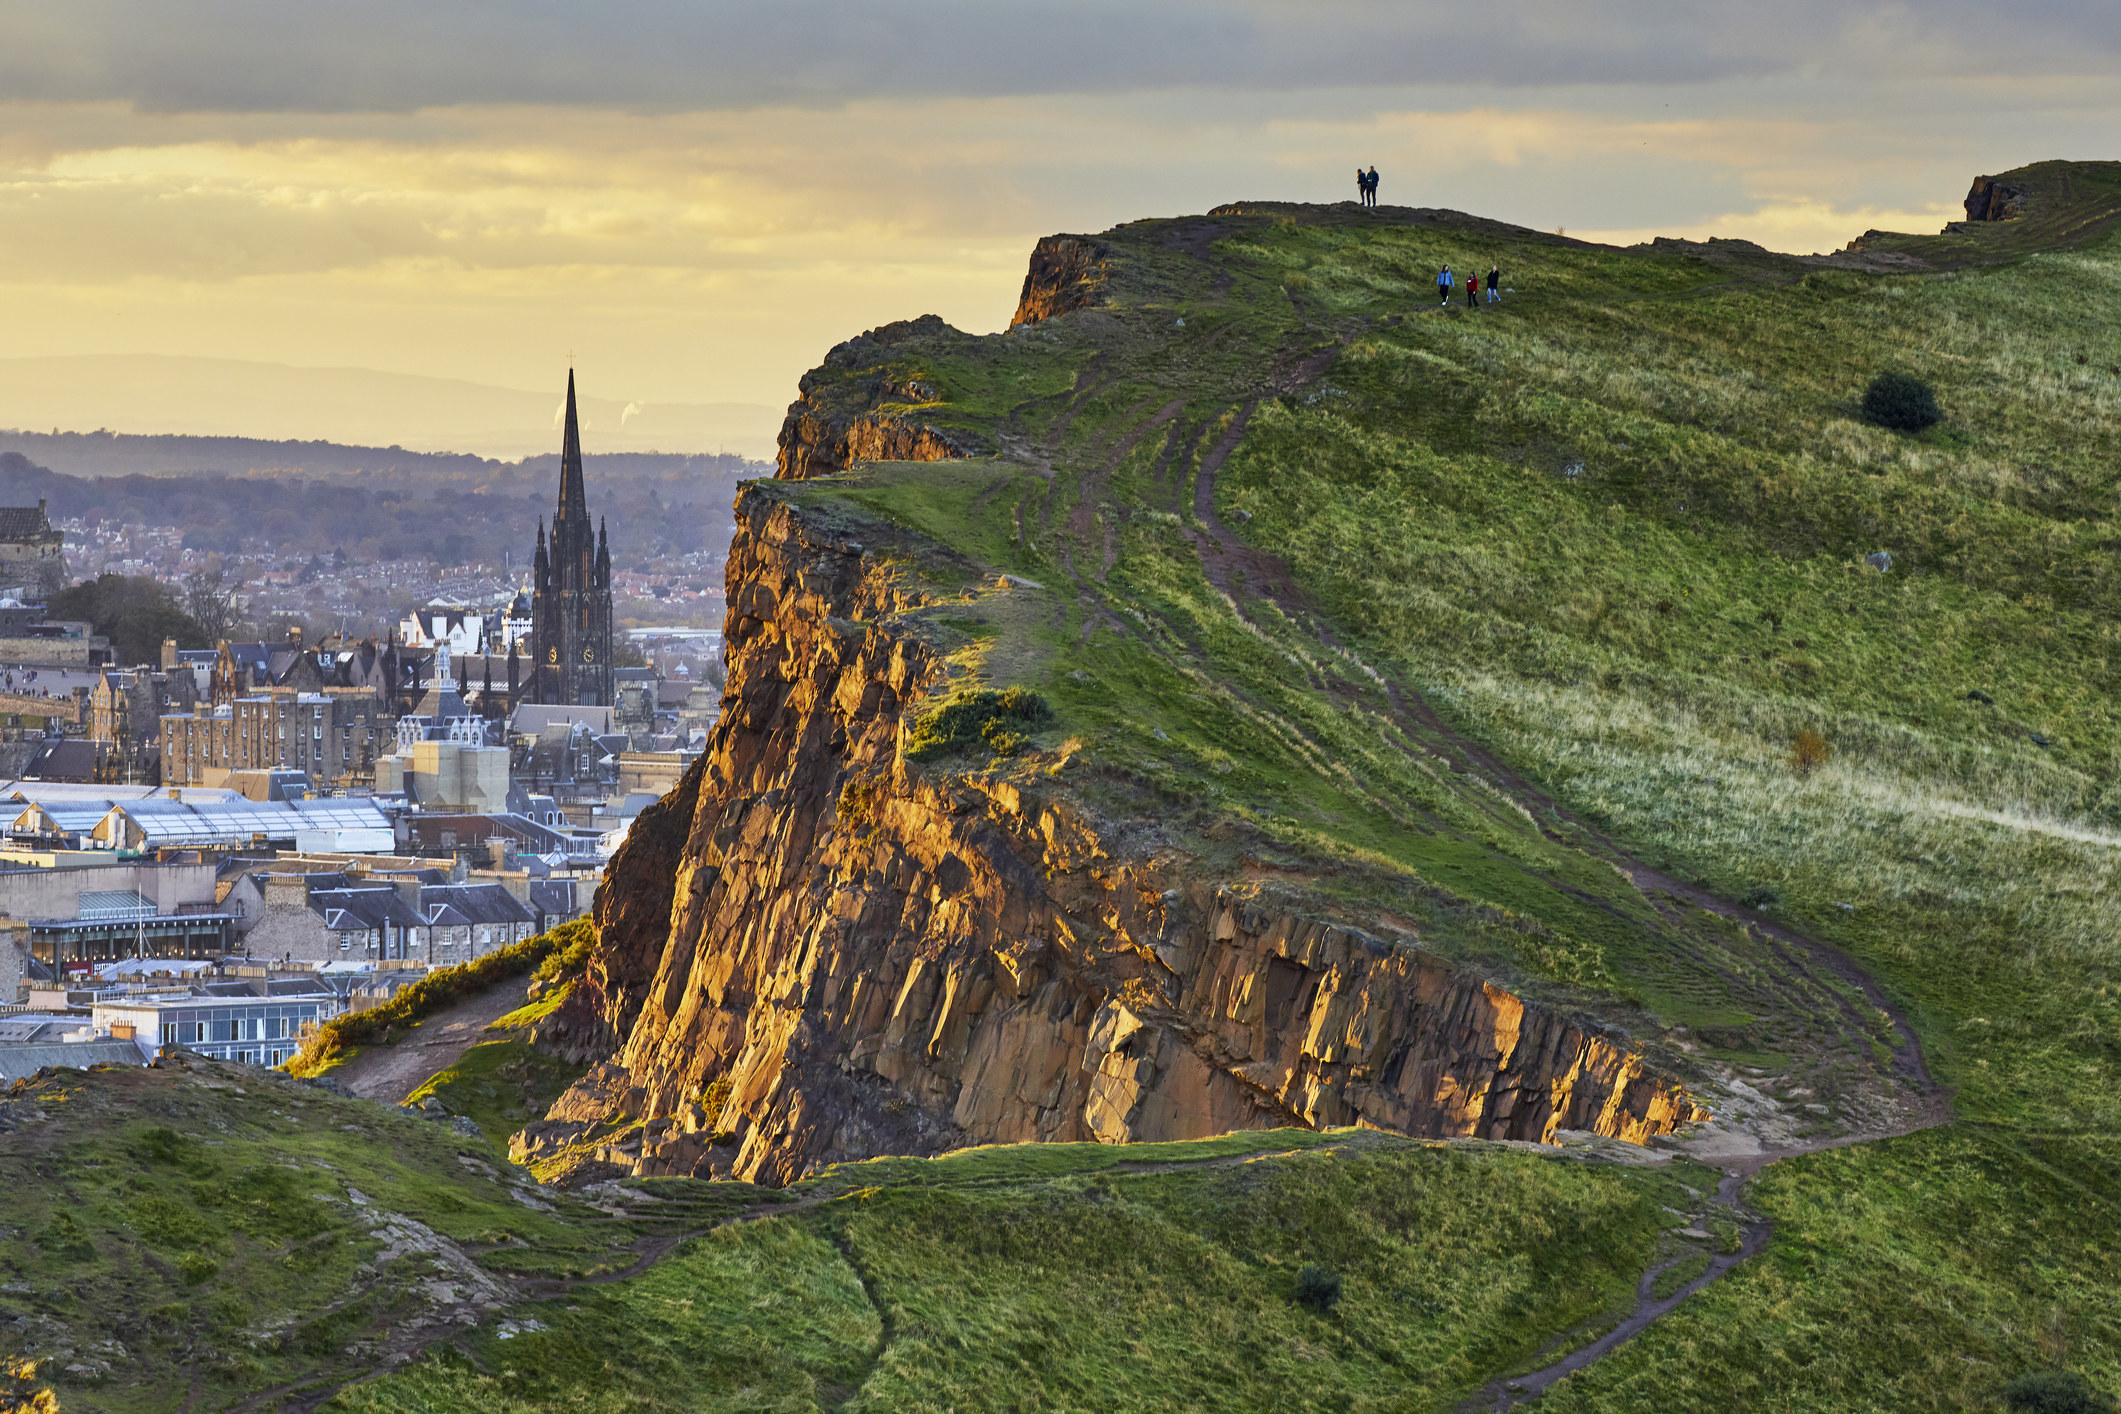 Arthur's Seat hike with an amazing view of Edinburgh.